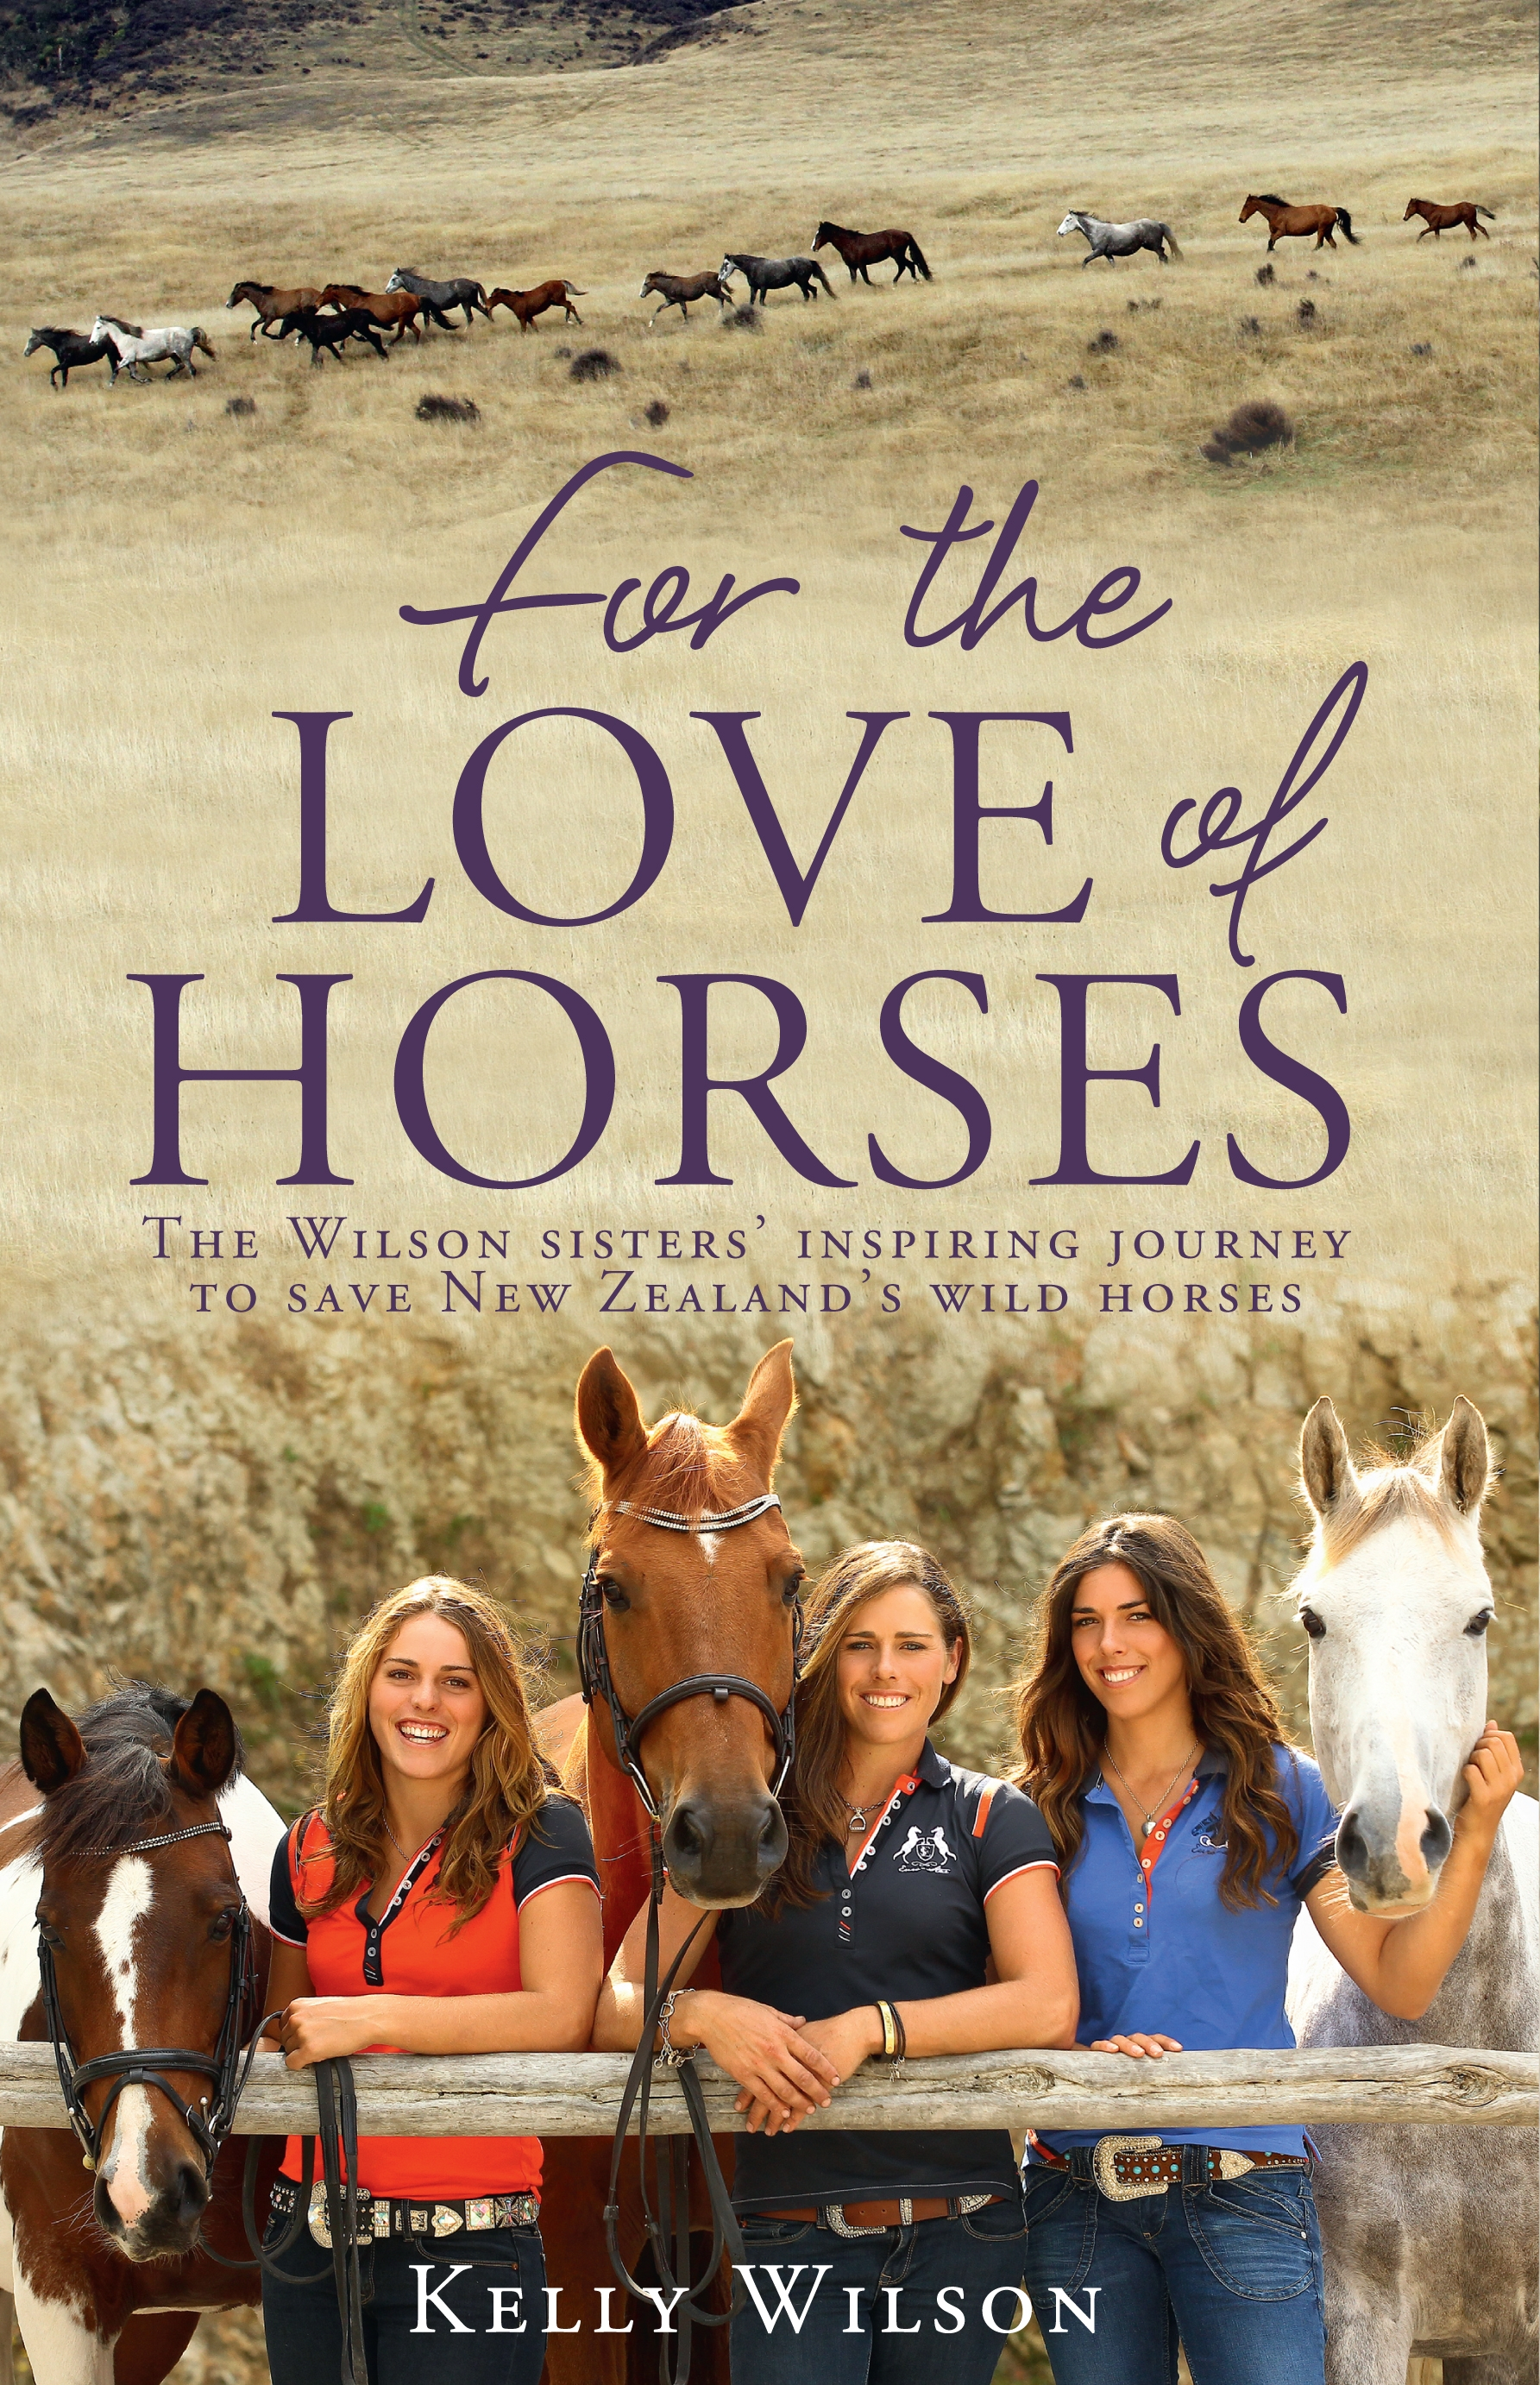 For the Love of Horses The Wilson Sisters' Inspiring Journey to Save New Zealand's Wild Horses